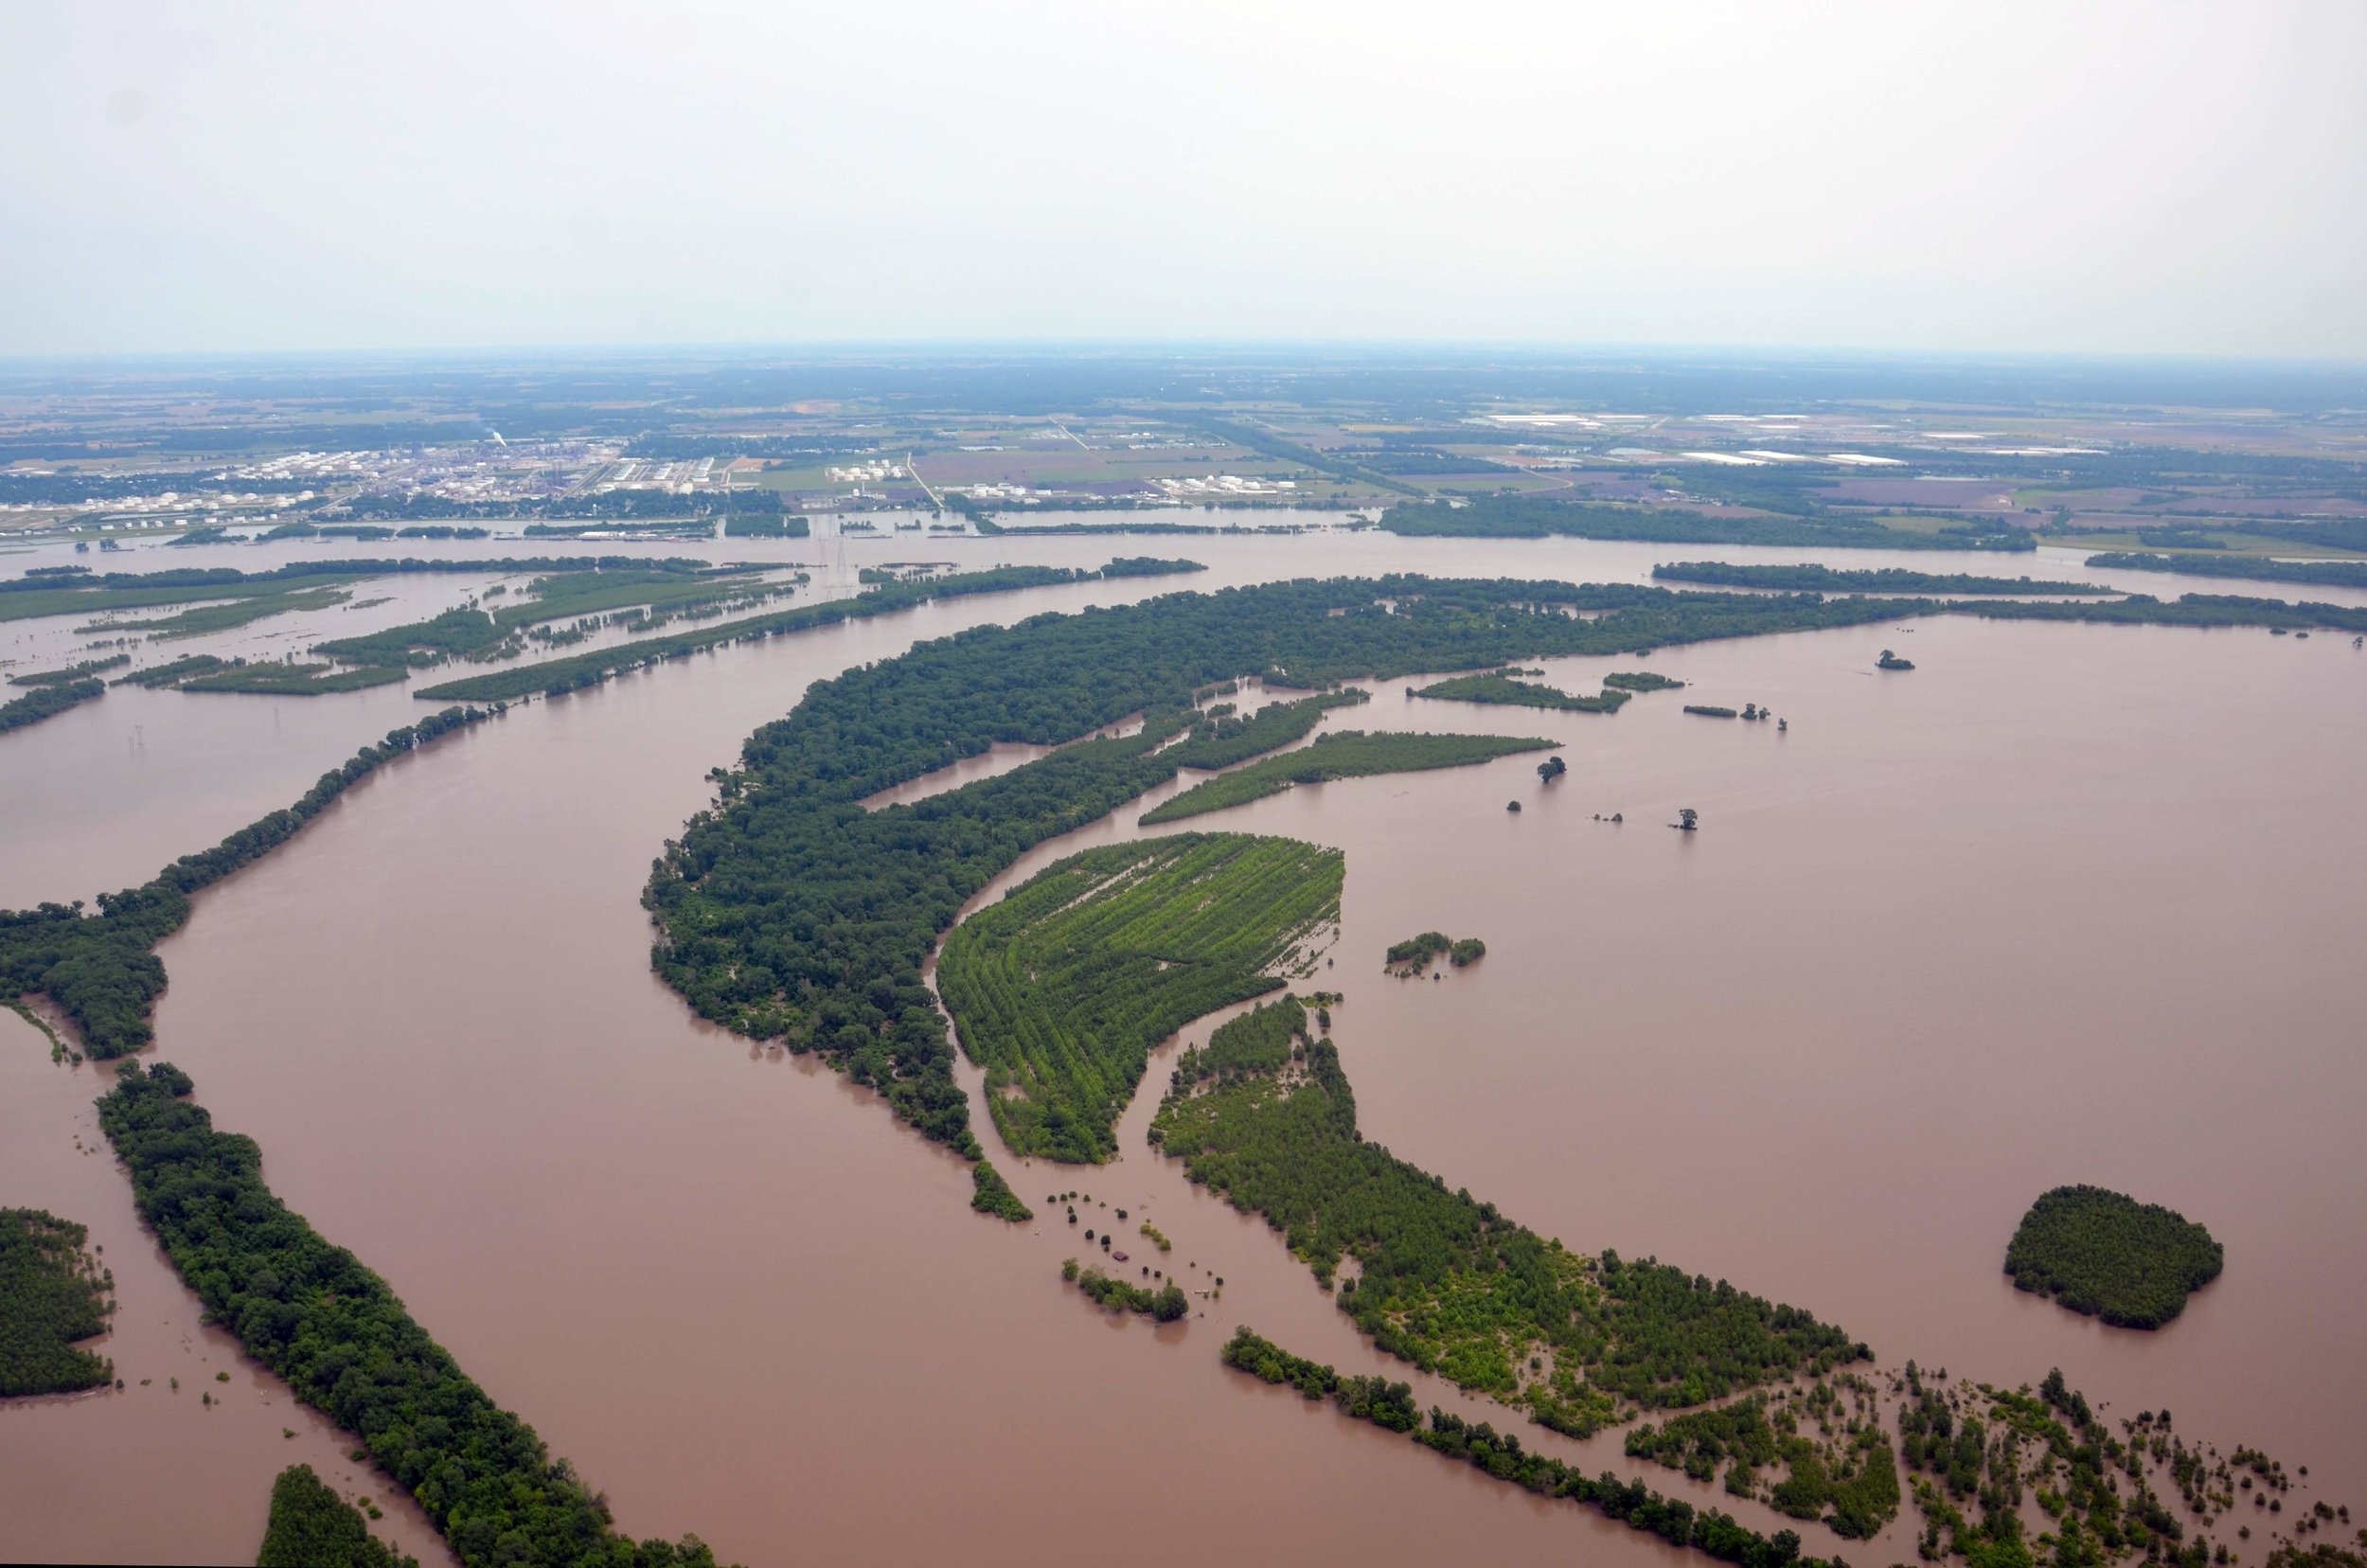 Confluence of the Missouri and Mississippi Rivers | Photo taken on June 3 by Derek Hoeferlin